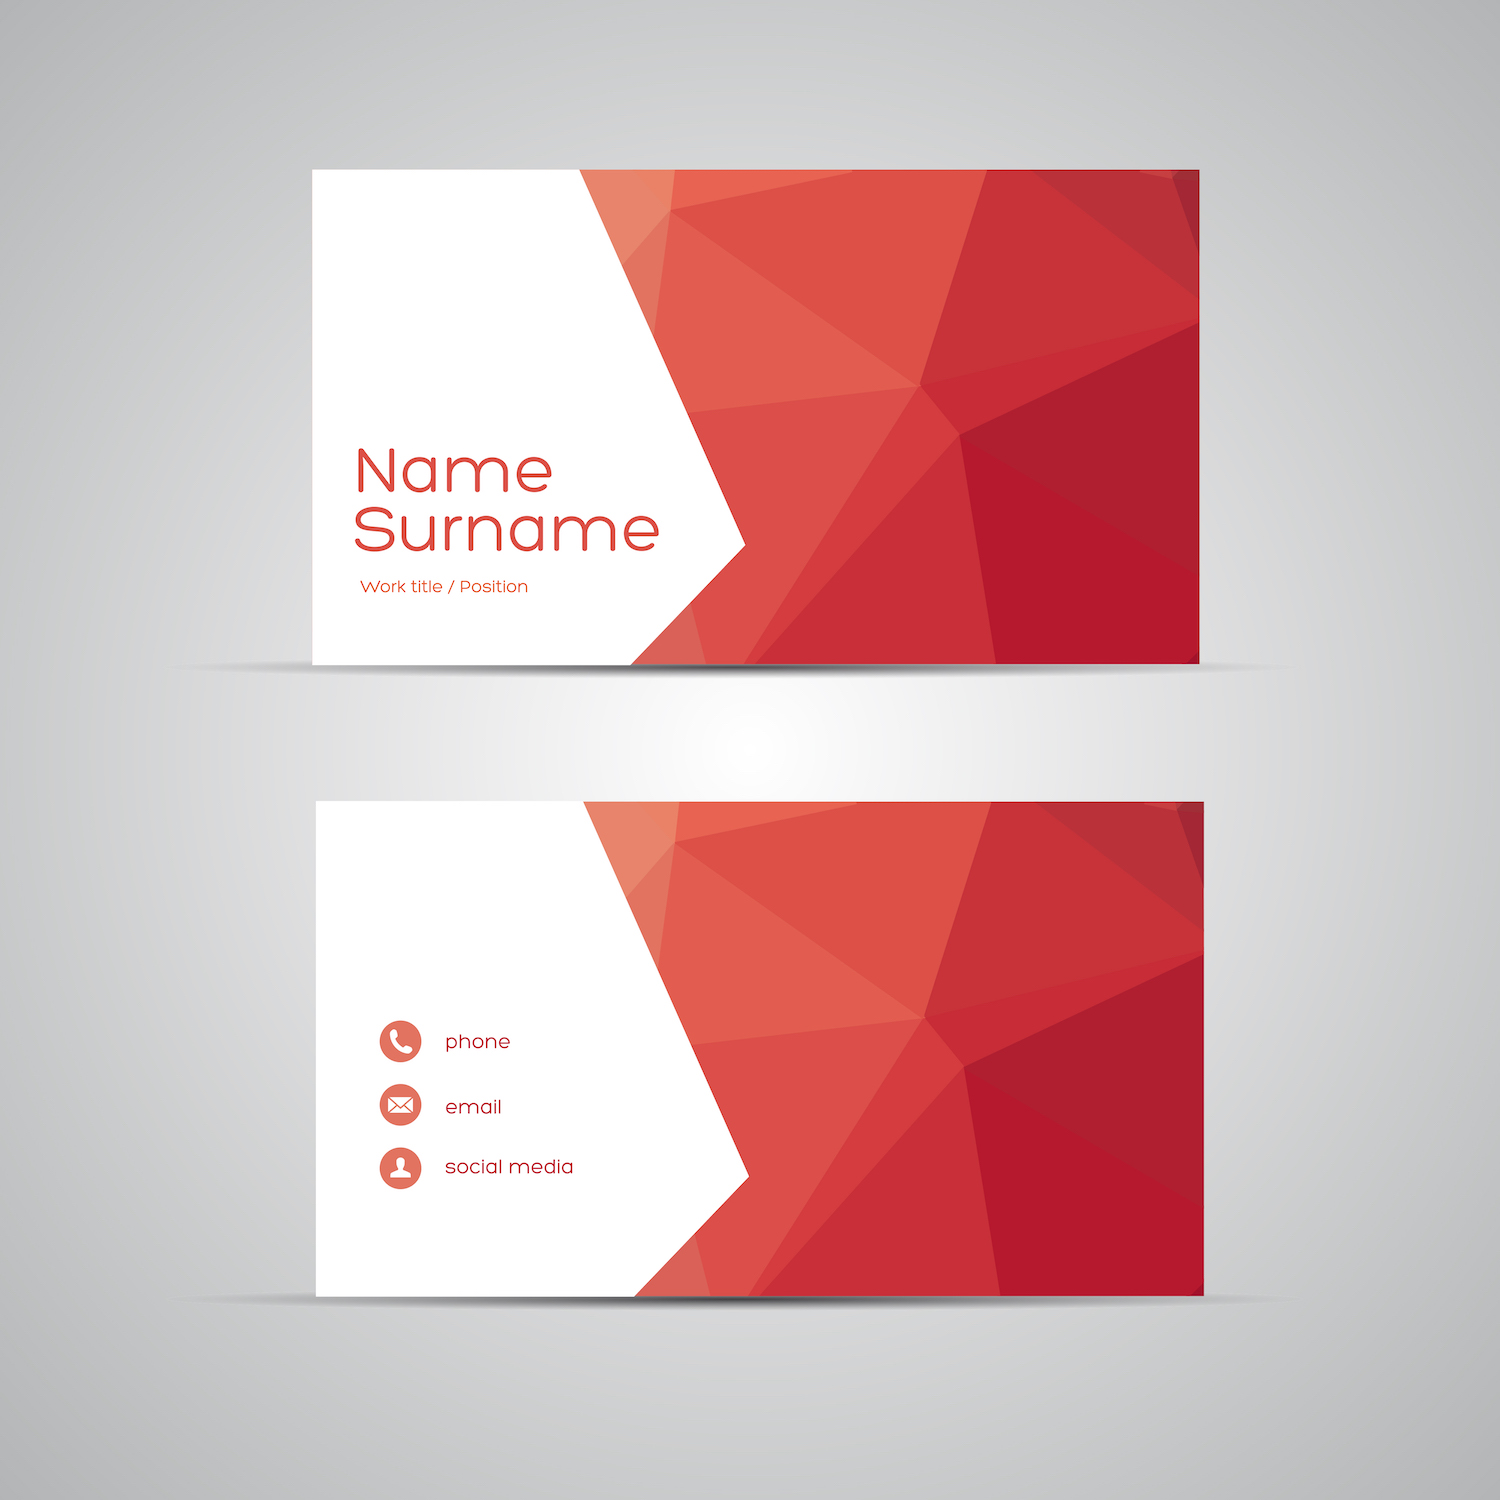 Pharmacy business card design branding los angeles for Postcard business cards